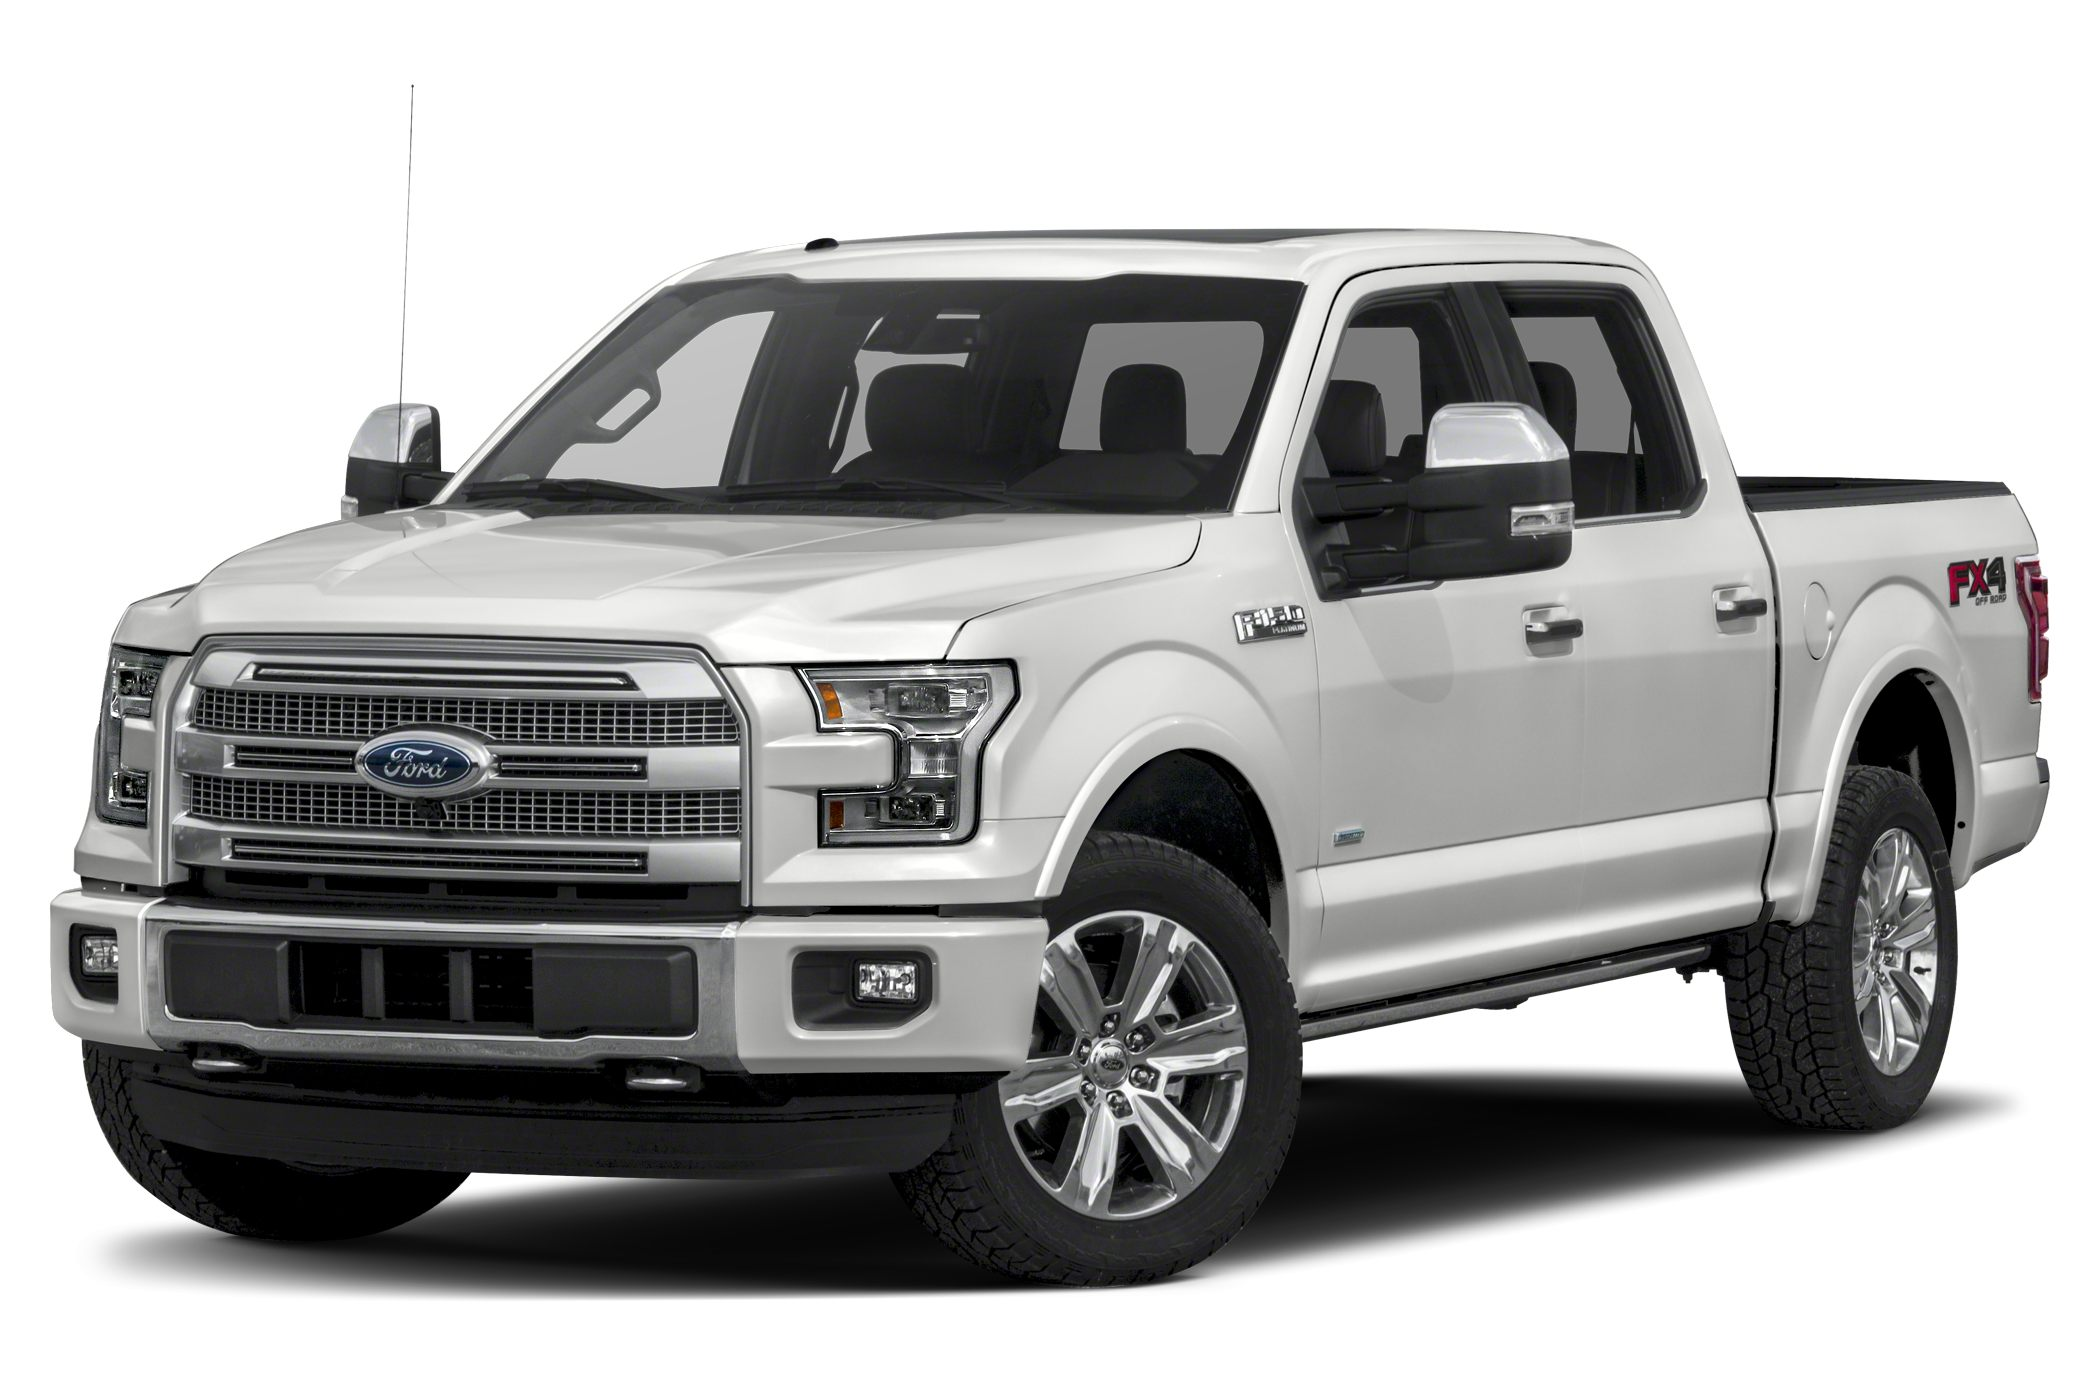 2015 Ford F150 Platinum Crew Cab Pickup for sale in Columbia for $54,453 with 11 miles